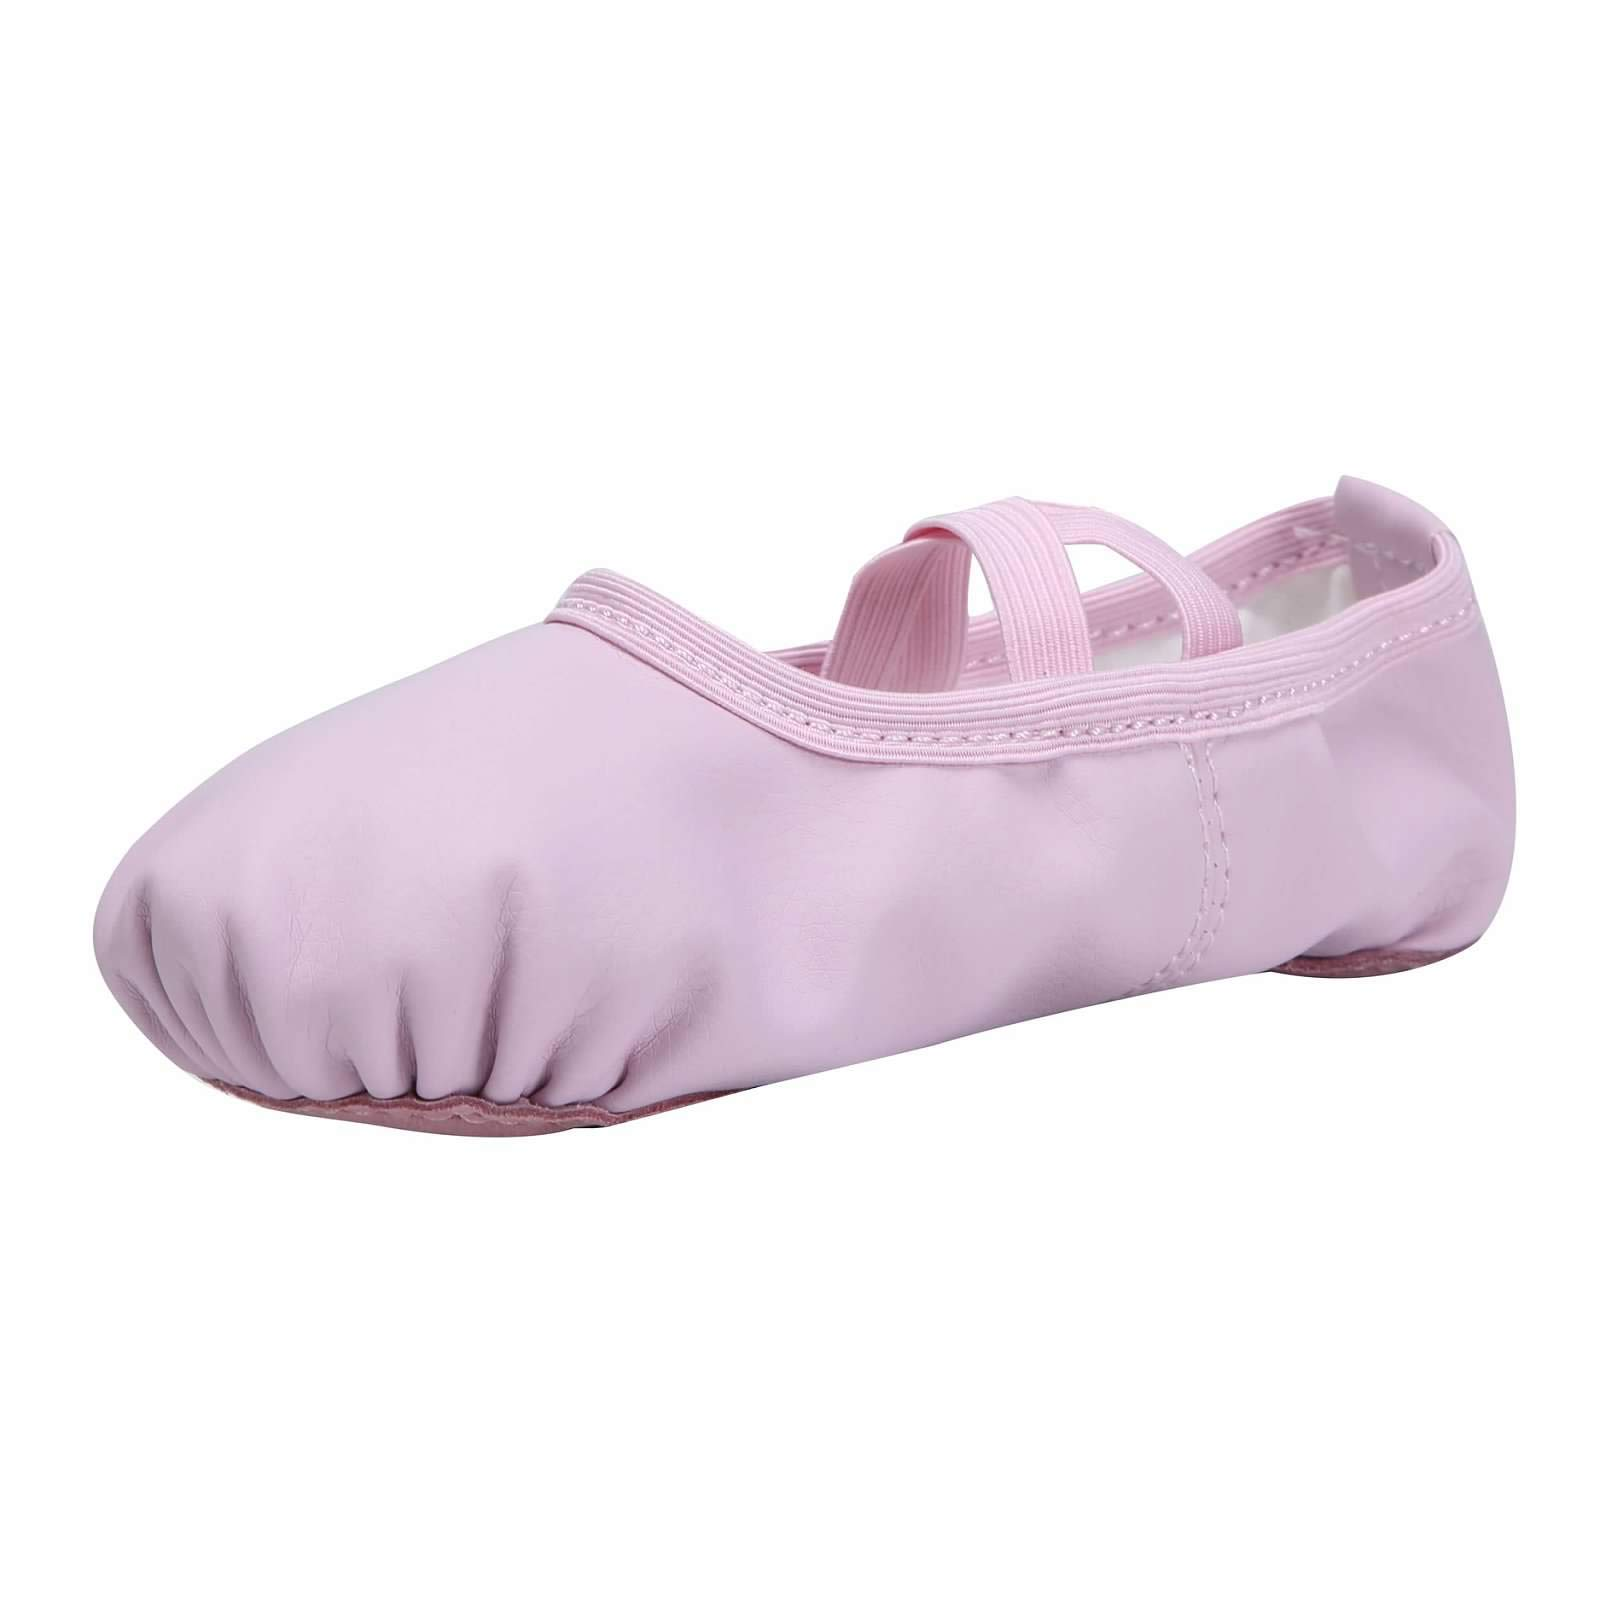 Linodes PU Leather Ballet Shoes/Ballet Slippers/Dance Shoes (Toddler/Baby Girl/Little/Big Kid)